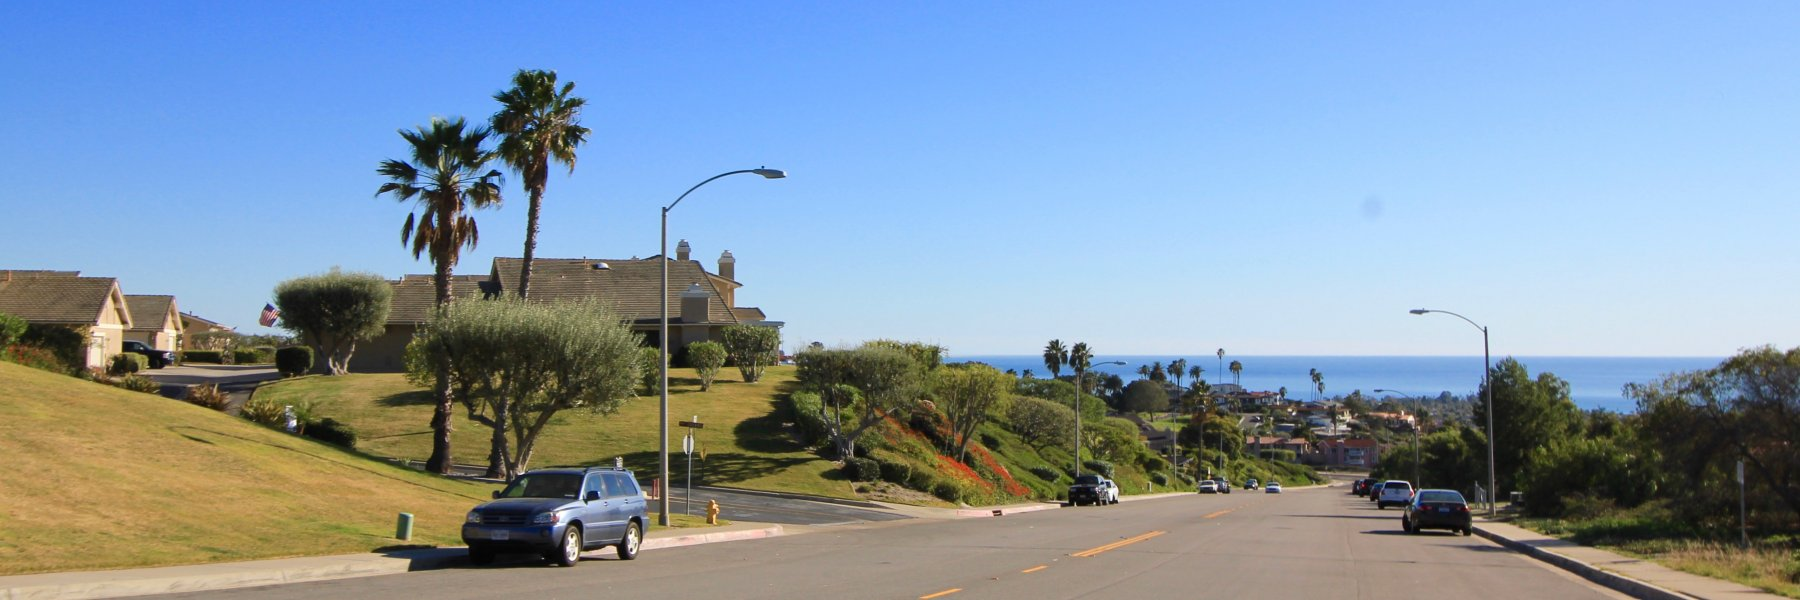 Mariners Point is a community of homes in San Clemente California